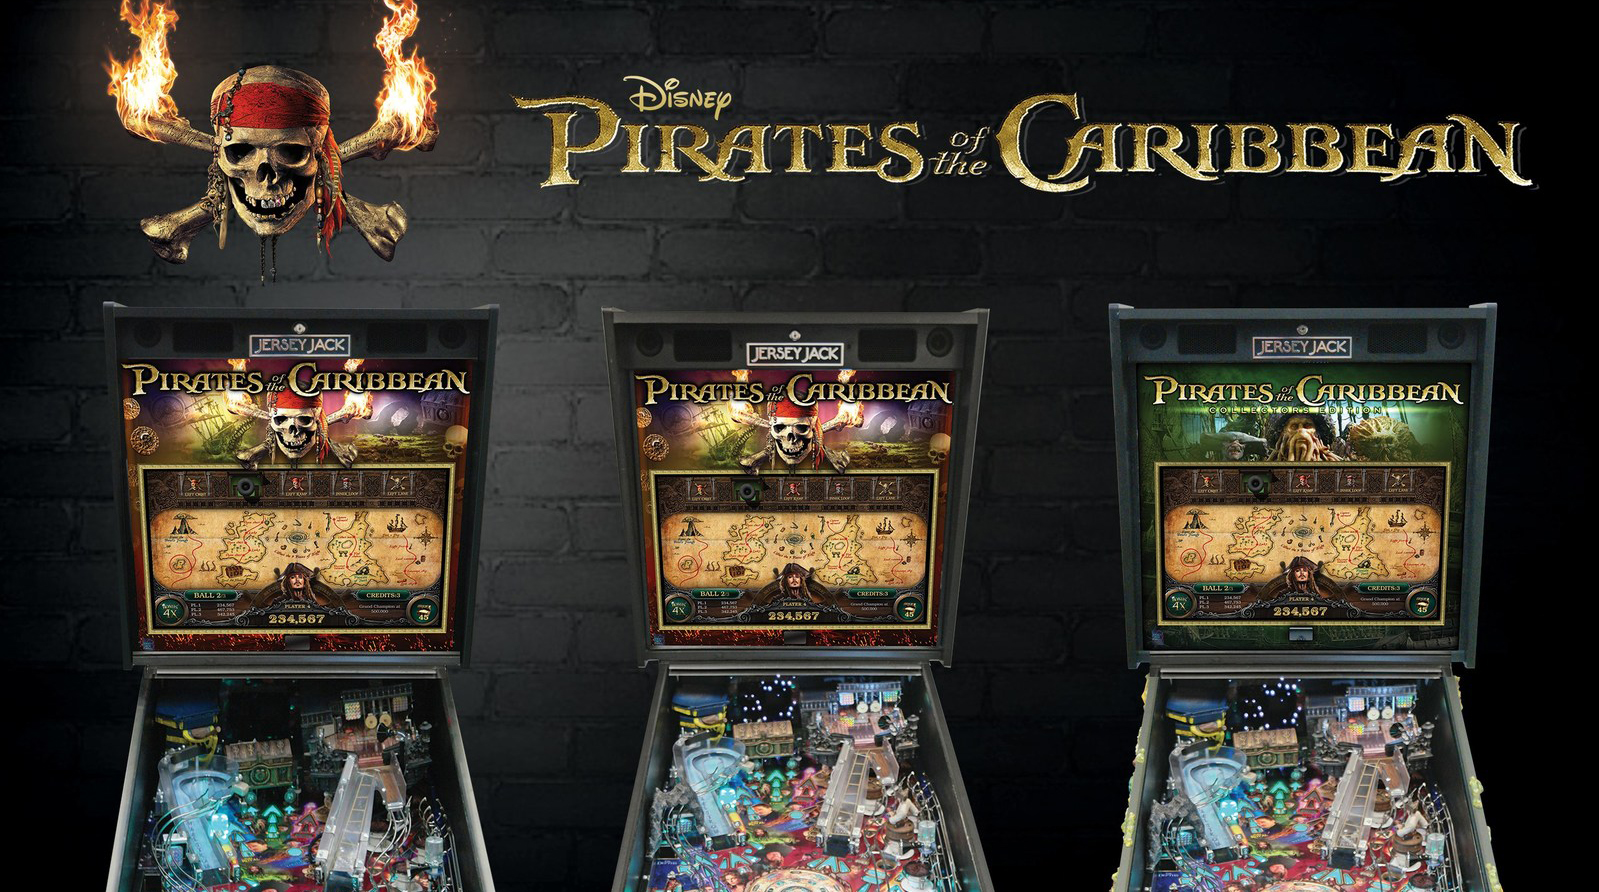 Jersey Jack Pinball Unveils a Variety of Disney's Pirates of the Caribbean Pinball